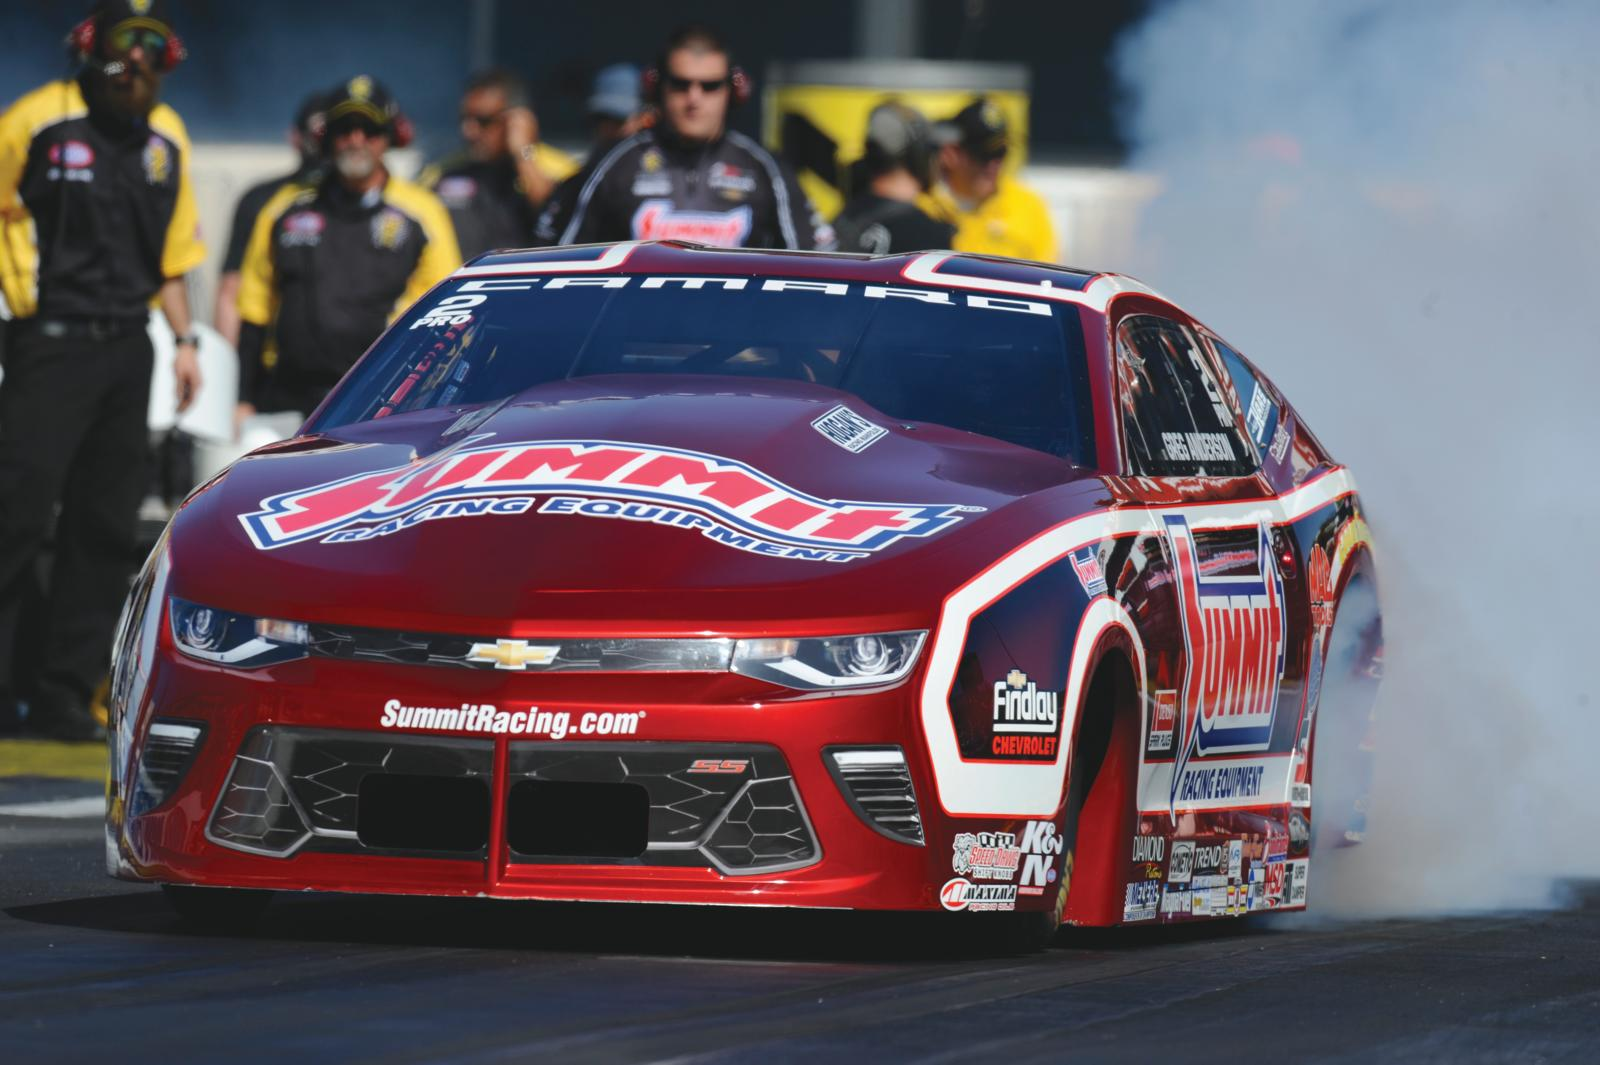 How To Become A Nhra Pro Stock Driver